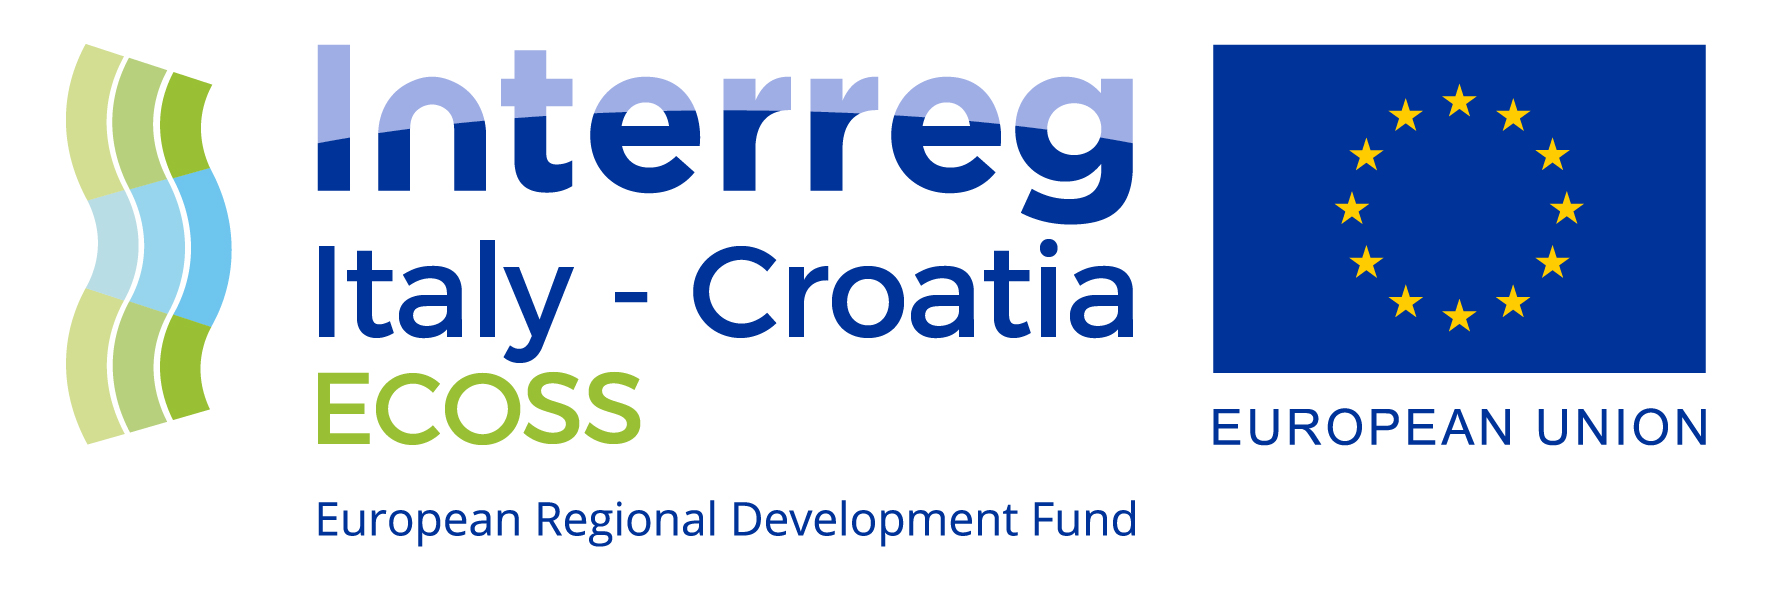 Second meeting of the Italy-Croatia ECOSS project